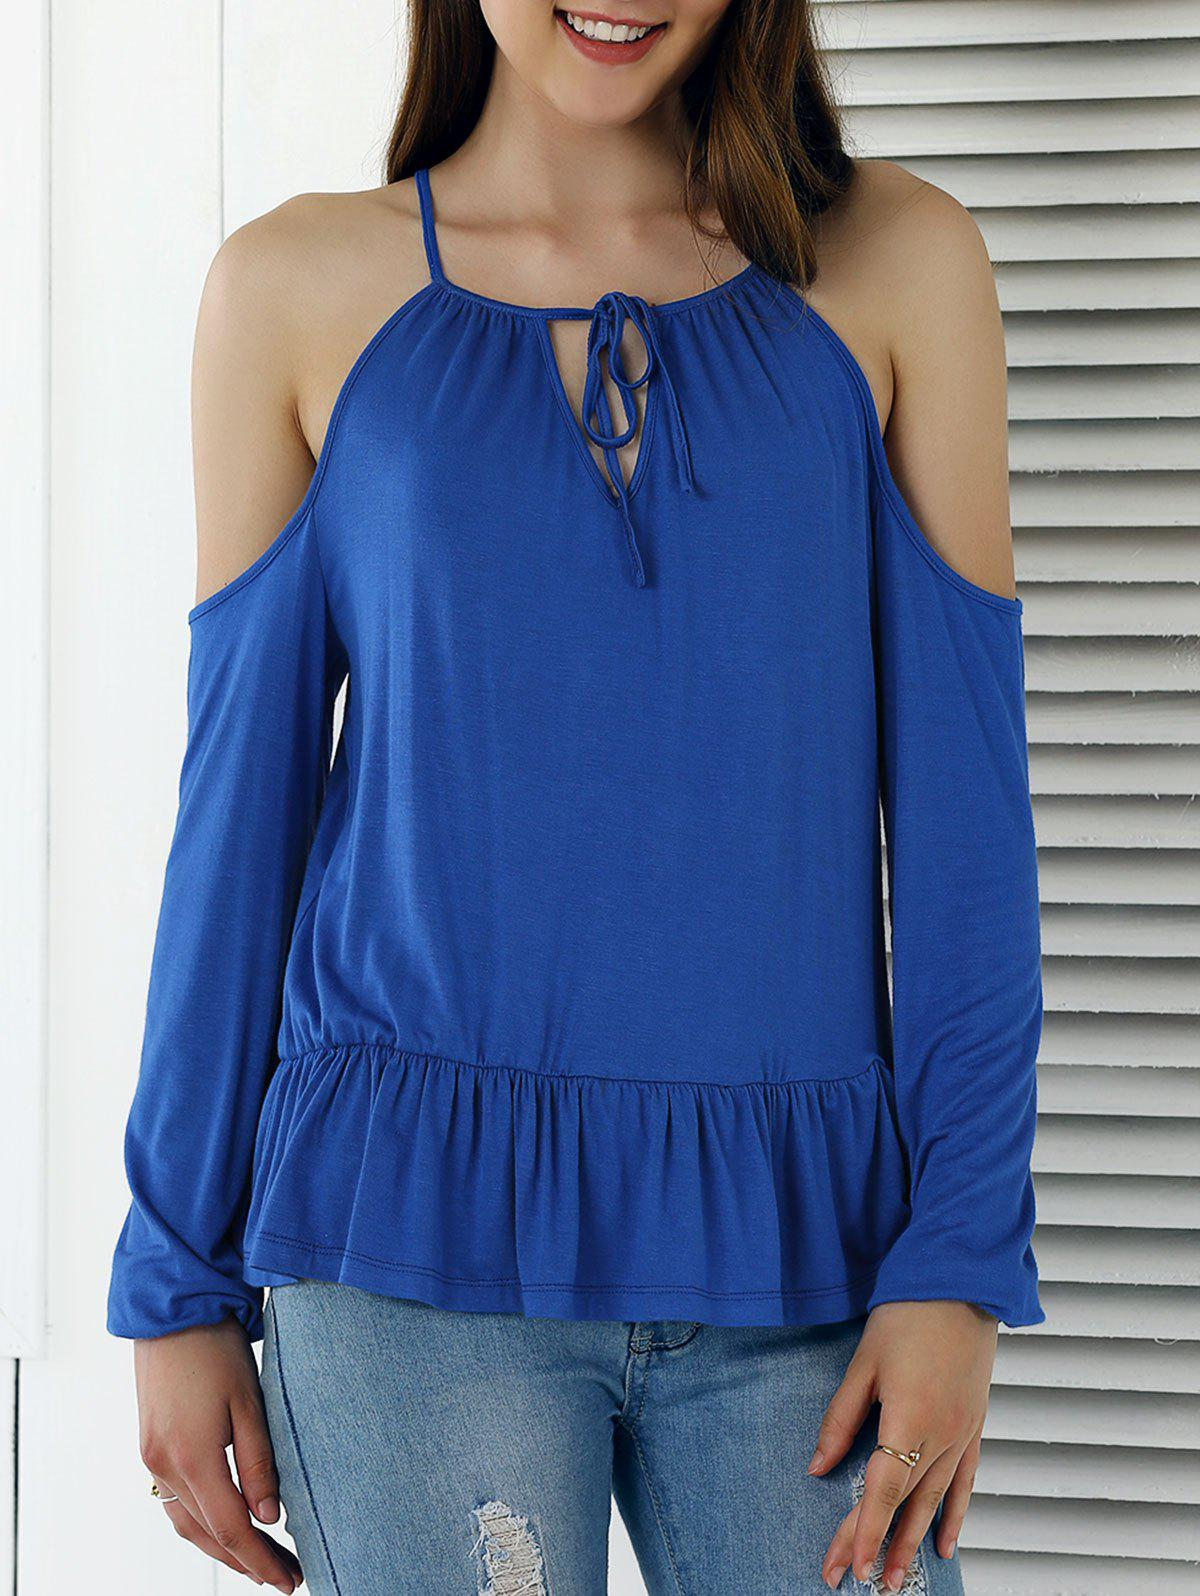 Cut Out Long Sleeve Solid Color Blouse - BLUE XL